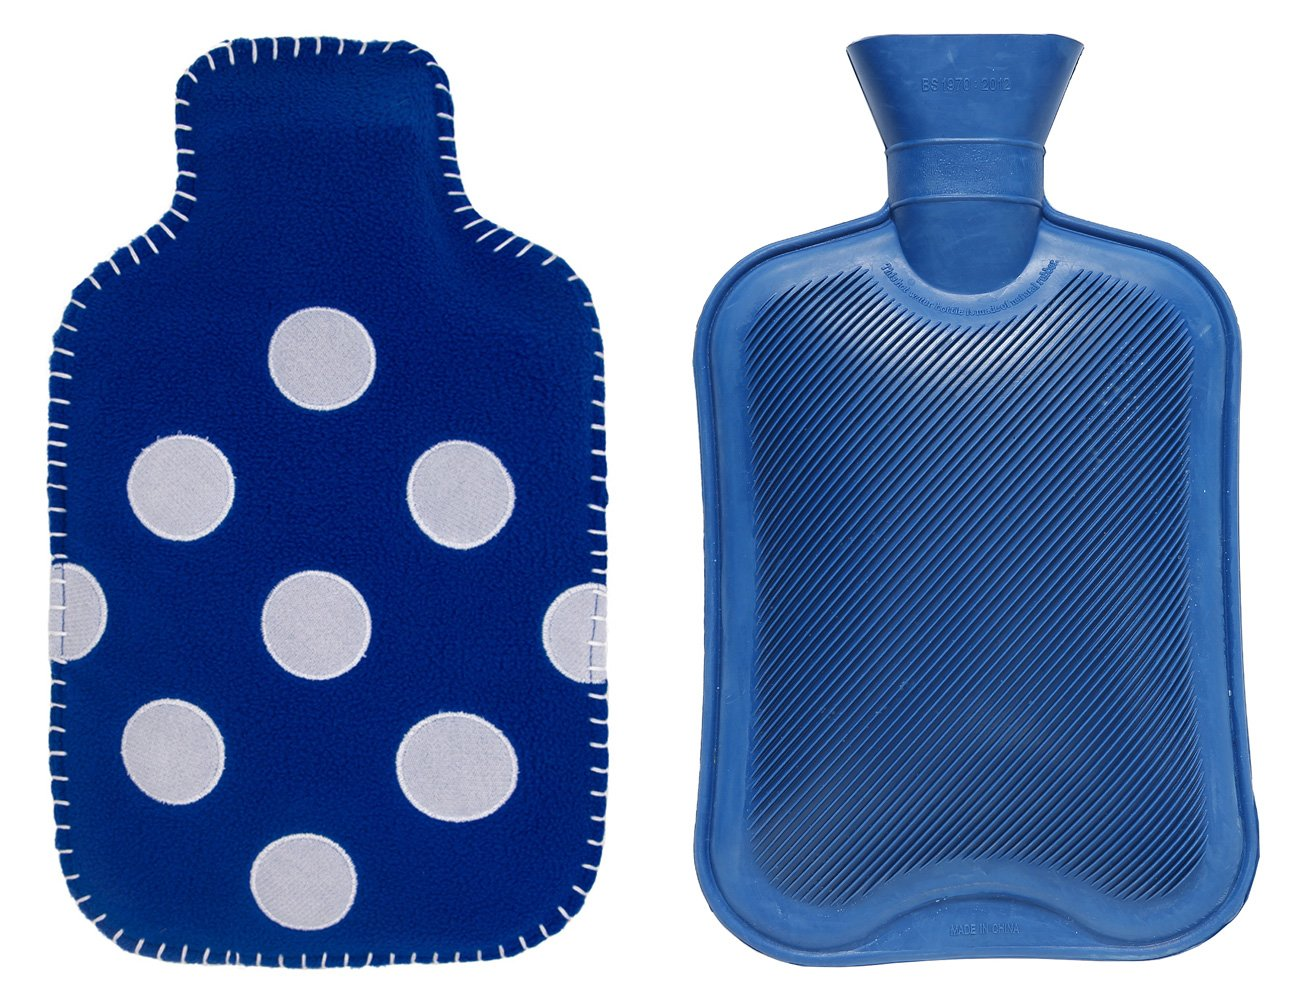 CuddleMe 2-Liter Hot Water Bottle w/ Soft Fleece Cover, Natural Odorless Rubber Hottie Water Heating Bag for Pain Relief, Menstrual Cramps, Cold Winter Bed Warming (Blue w/ Polka Dots)